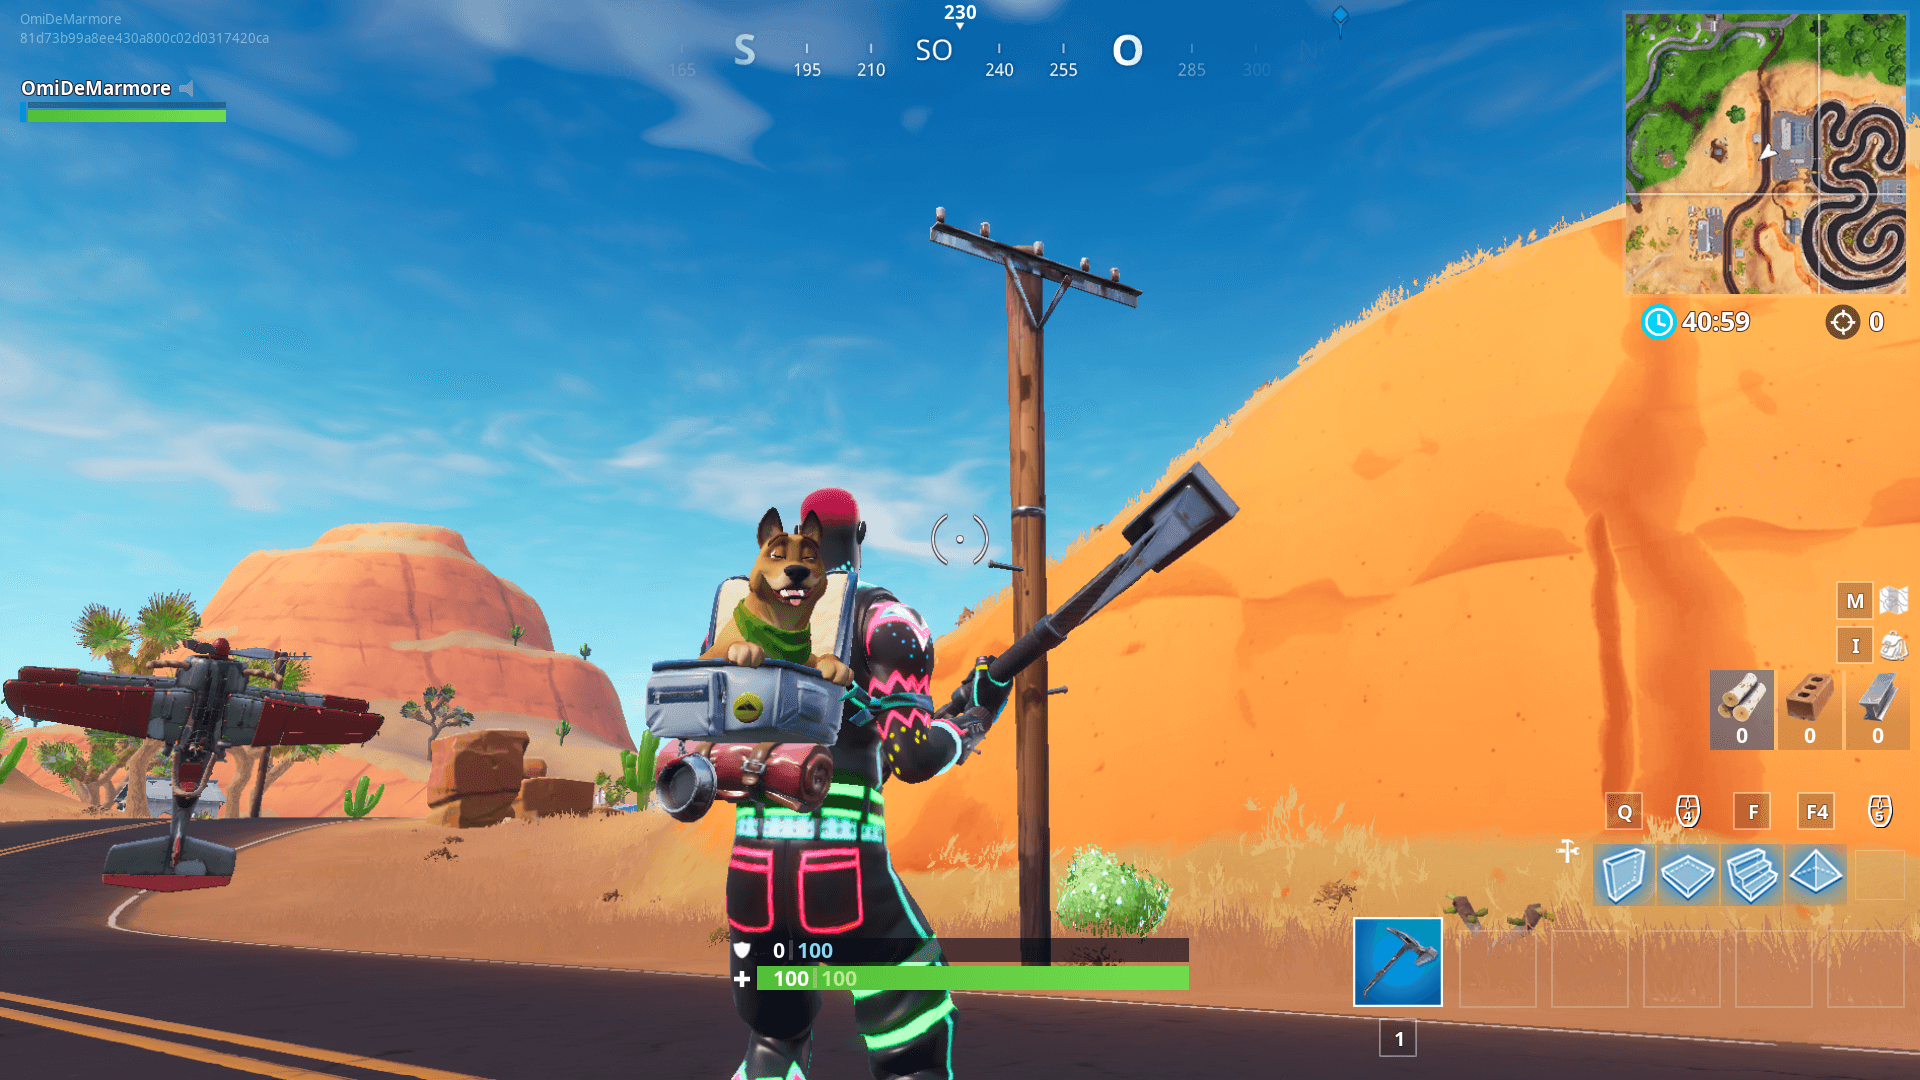 Fortnite Wooden Utility Poles Locations Season 7 Dot Esports